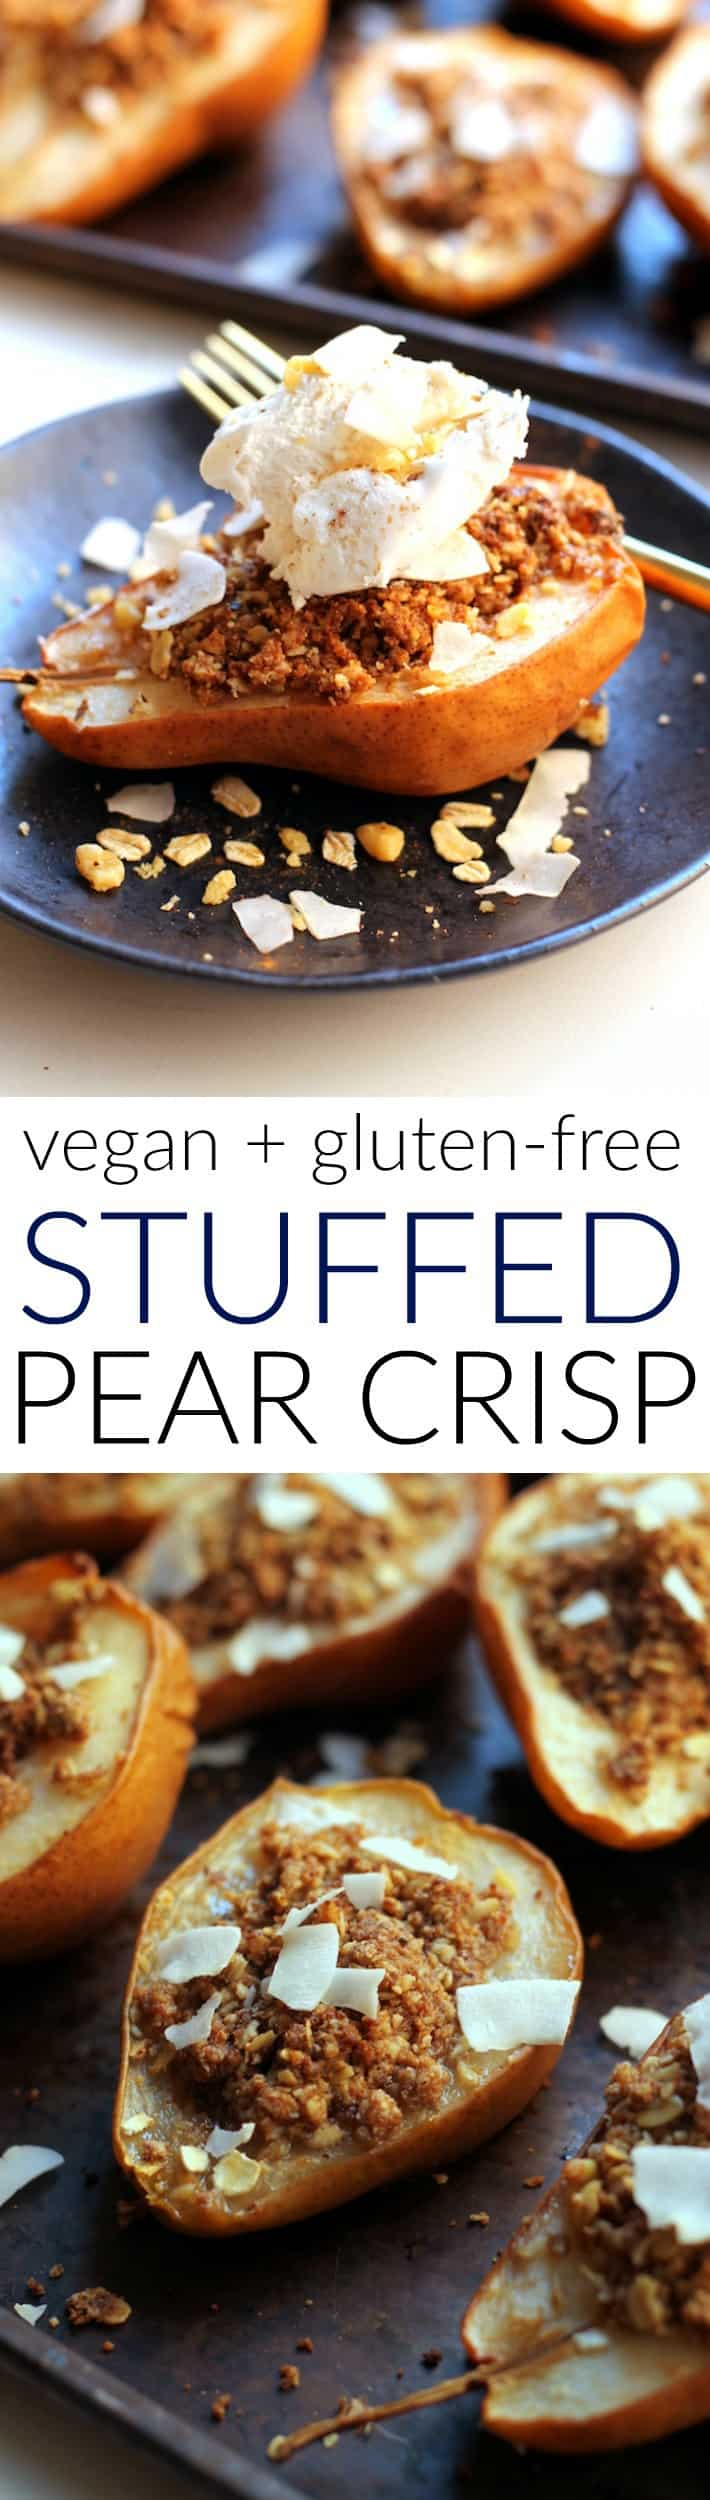 Enjoy these individual Healthy Stuffed Pear Crisps made with just 10 ingredients for the perfect holiday treat! Free of refined flour, sugar, and butter, they